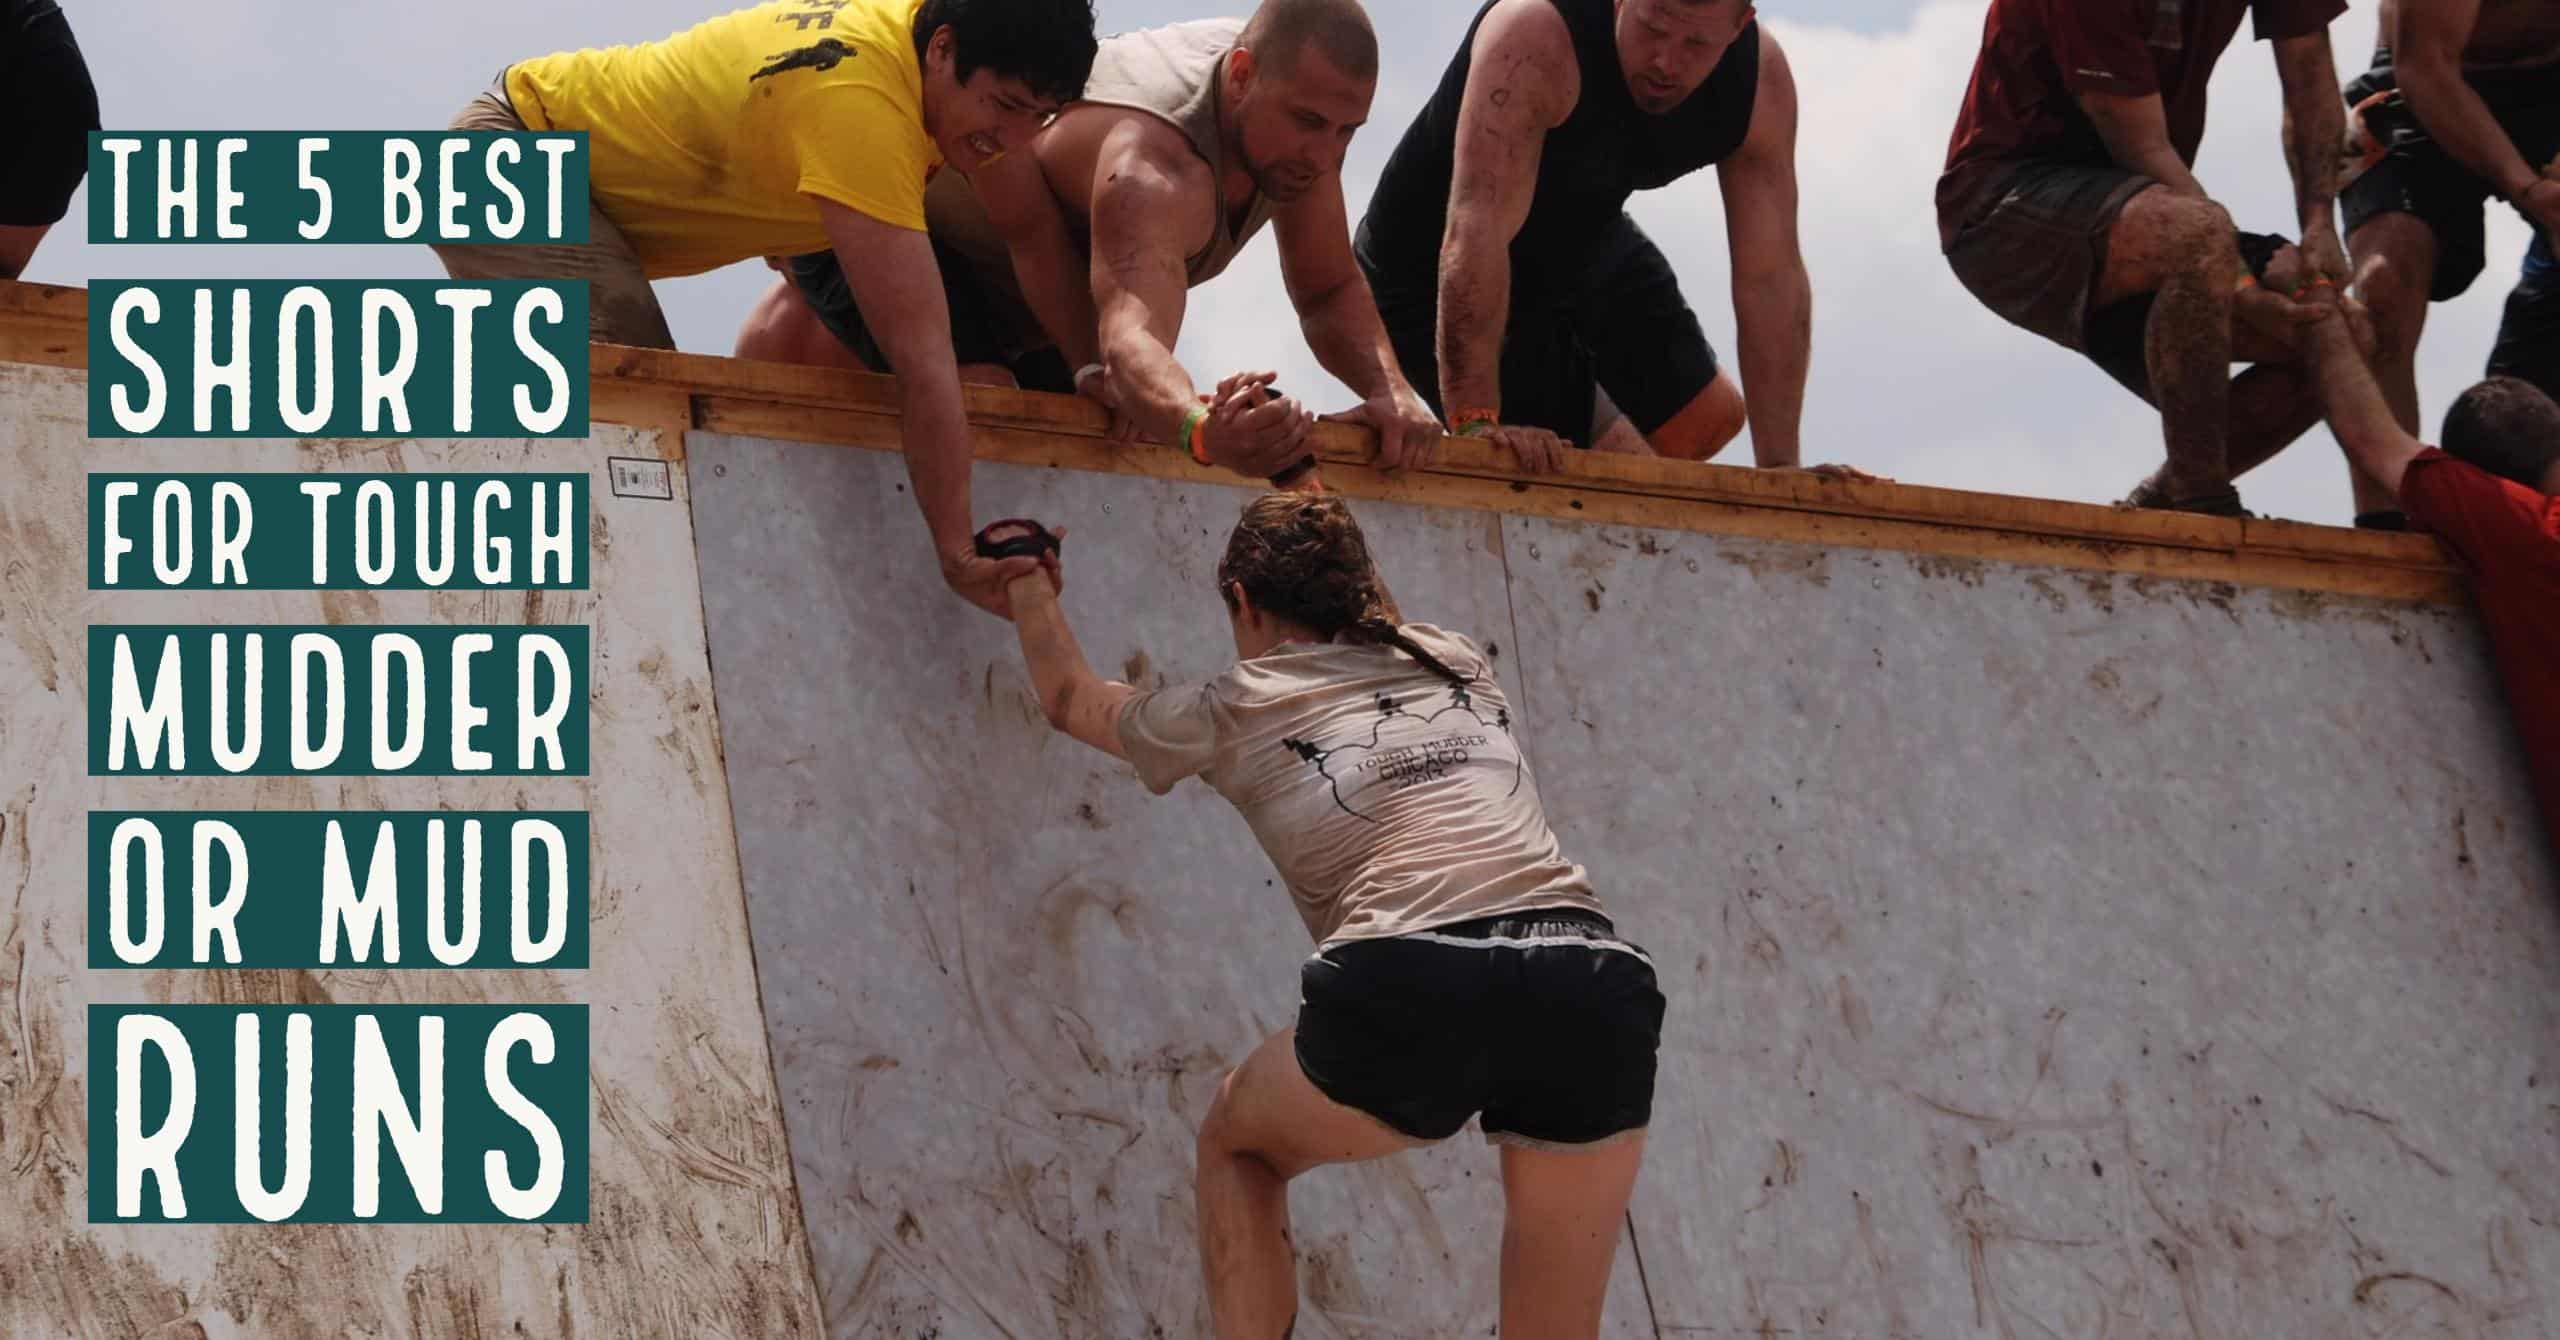 Choosing what shorts you wear for a Tough Mudder can make for a good or horrible experience. We break down the 5 Best Shorts for Tough Mudder or Mud Runs.